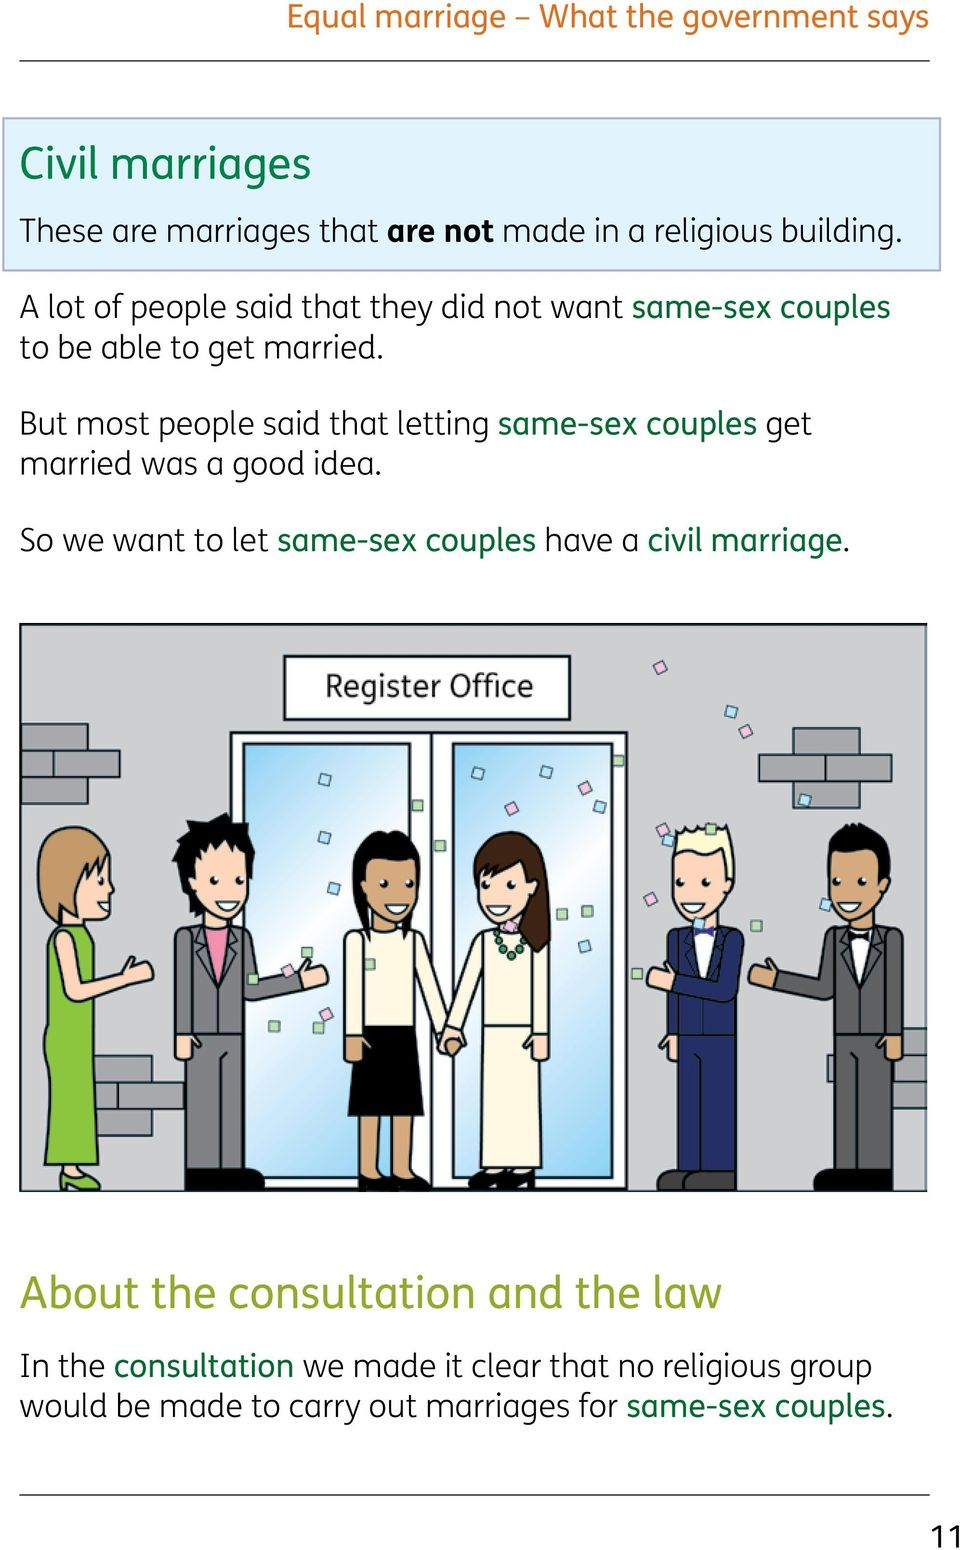 But most people said that letting same-sex couples get married was a good idea.